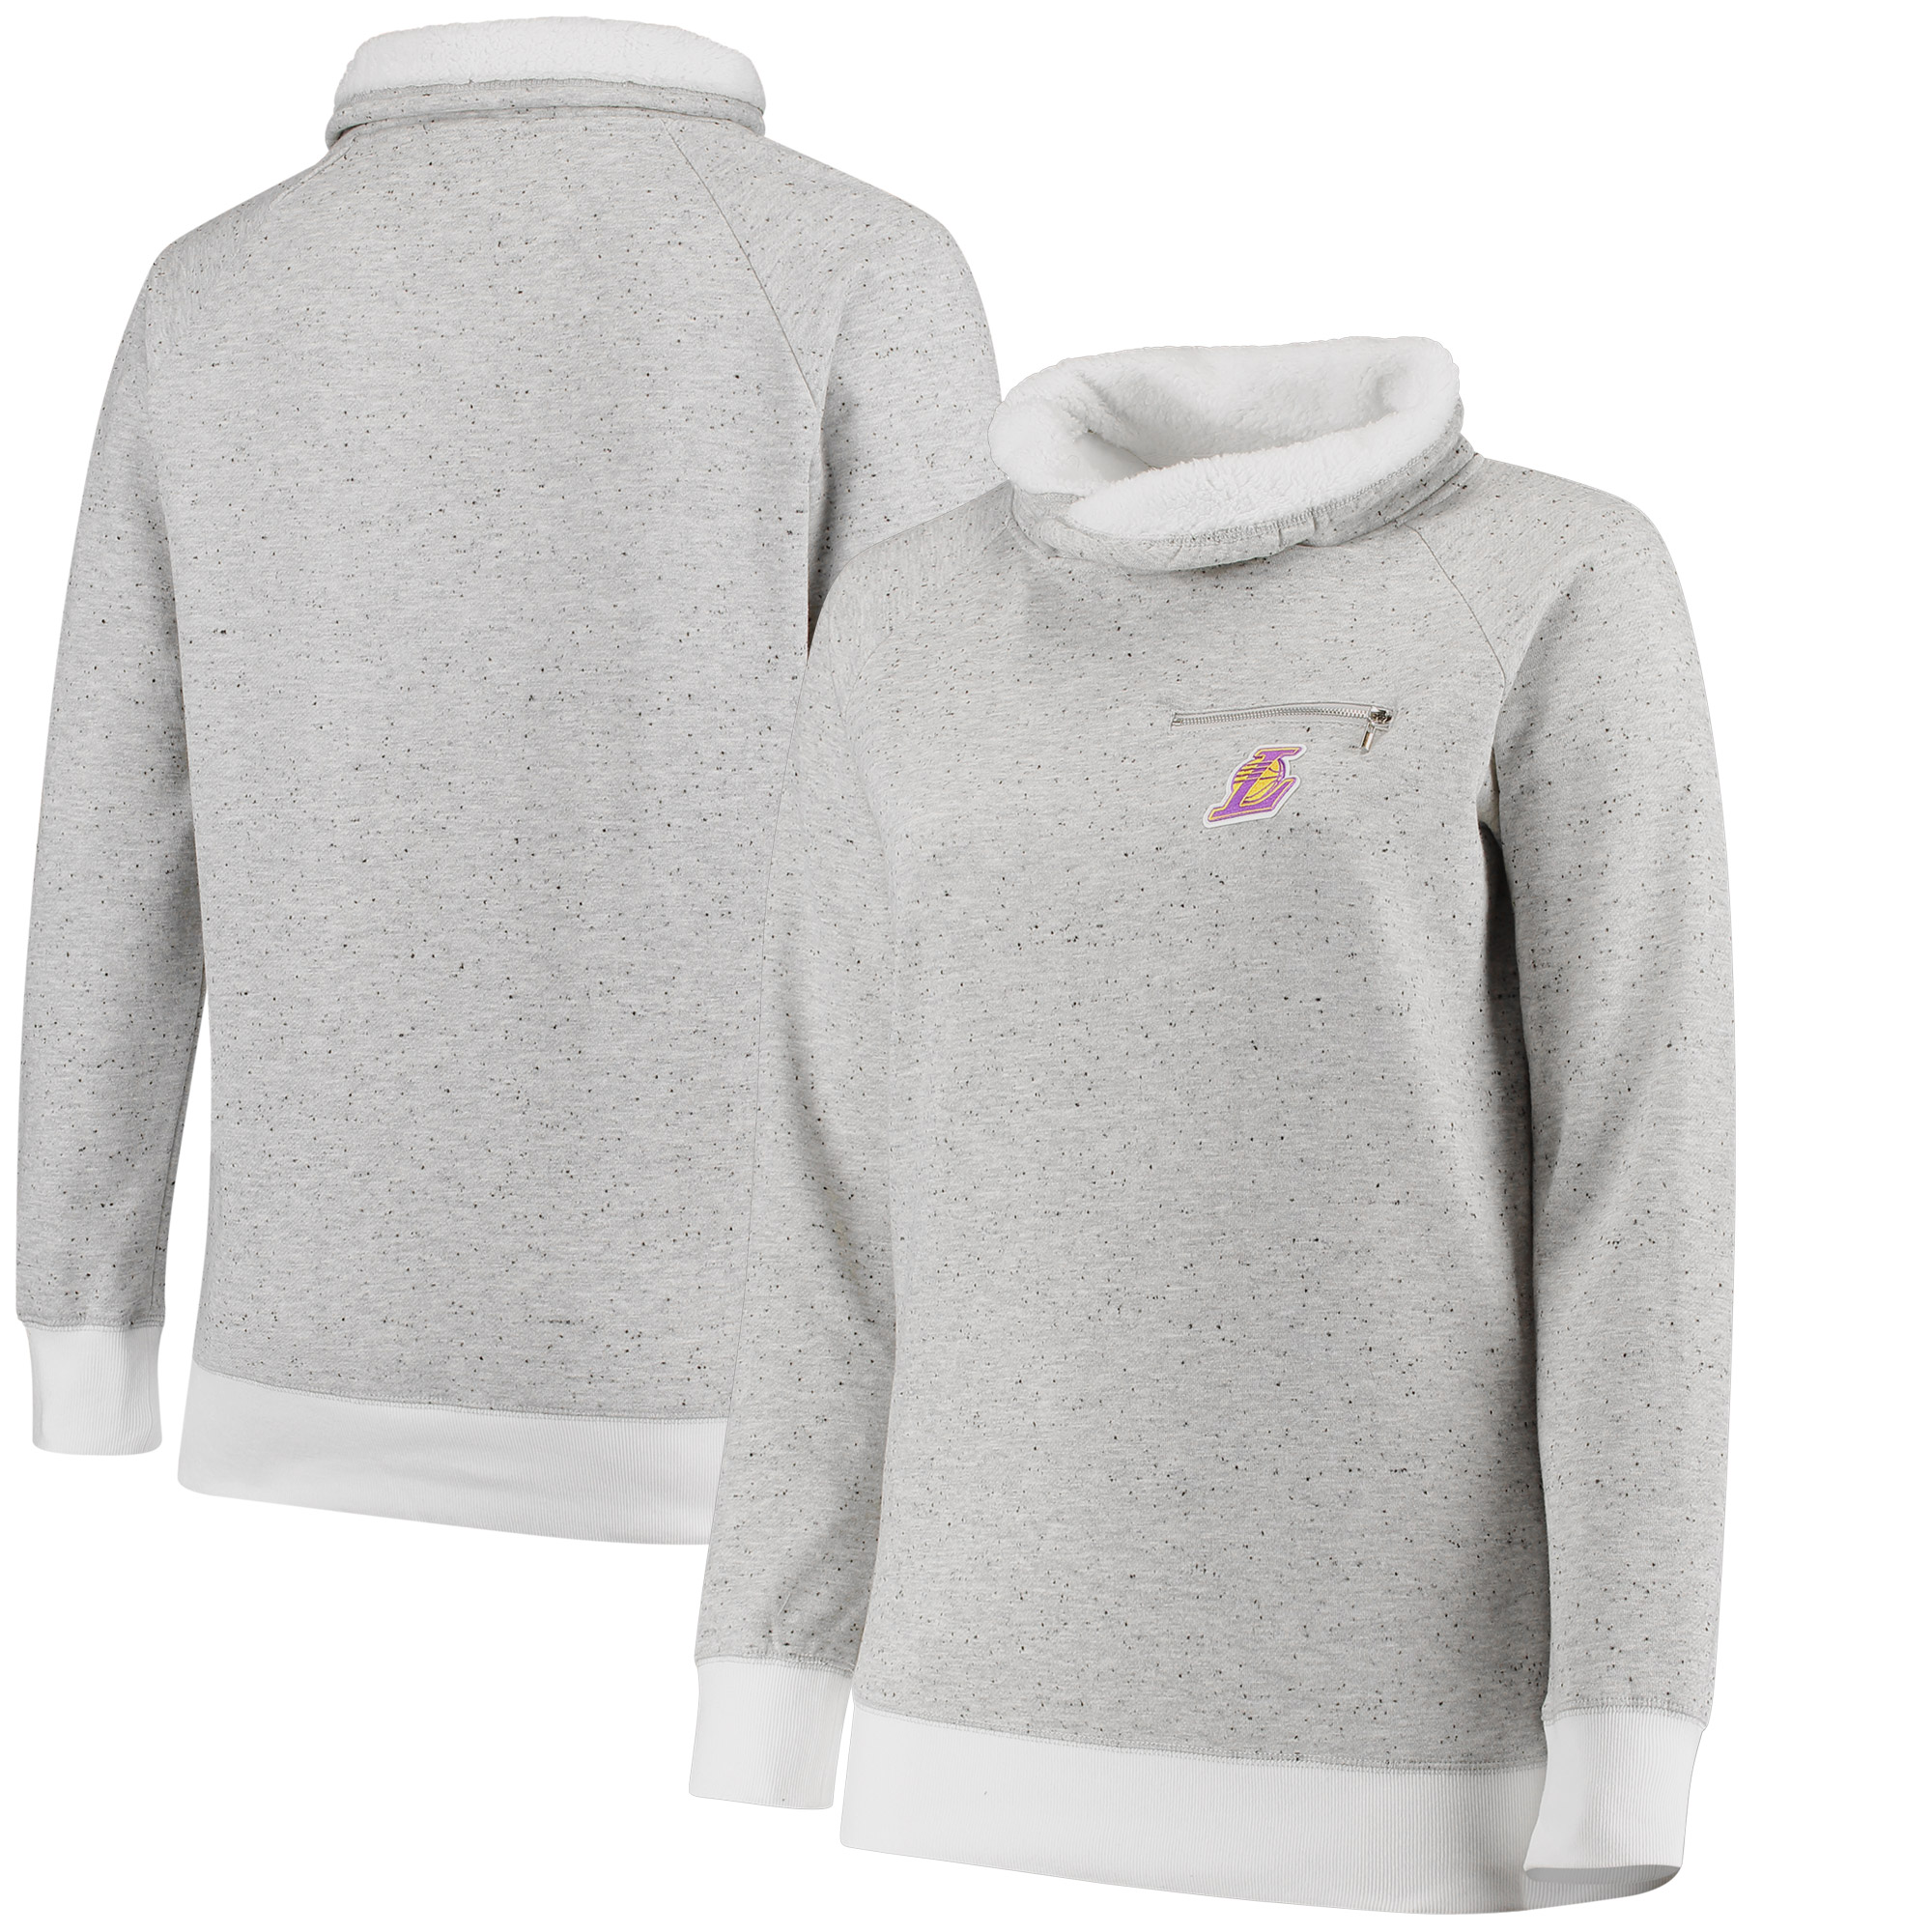 Los Angeles Lakers Women's Poodle Cowl Neck Pullover Sweatshirt - Gray